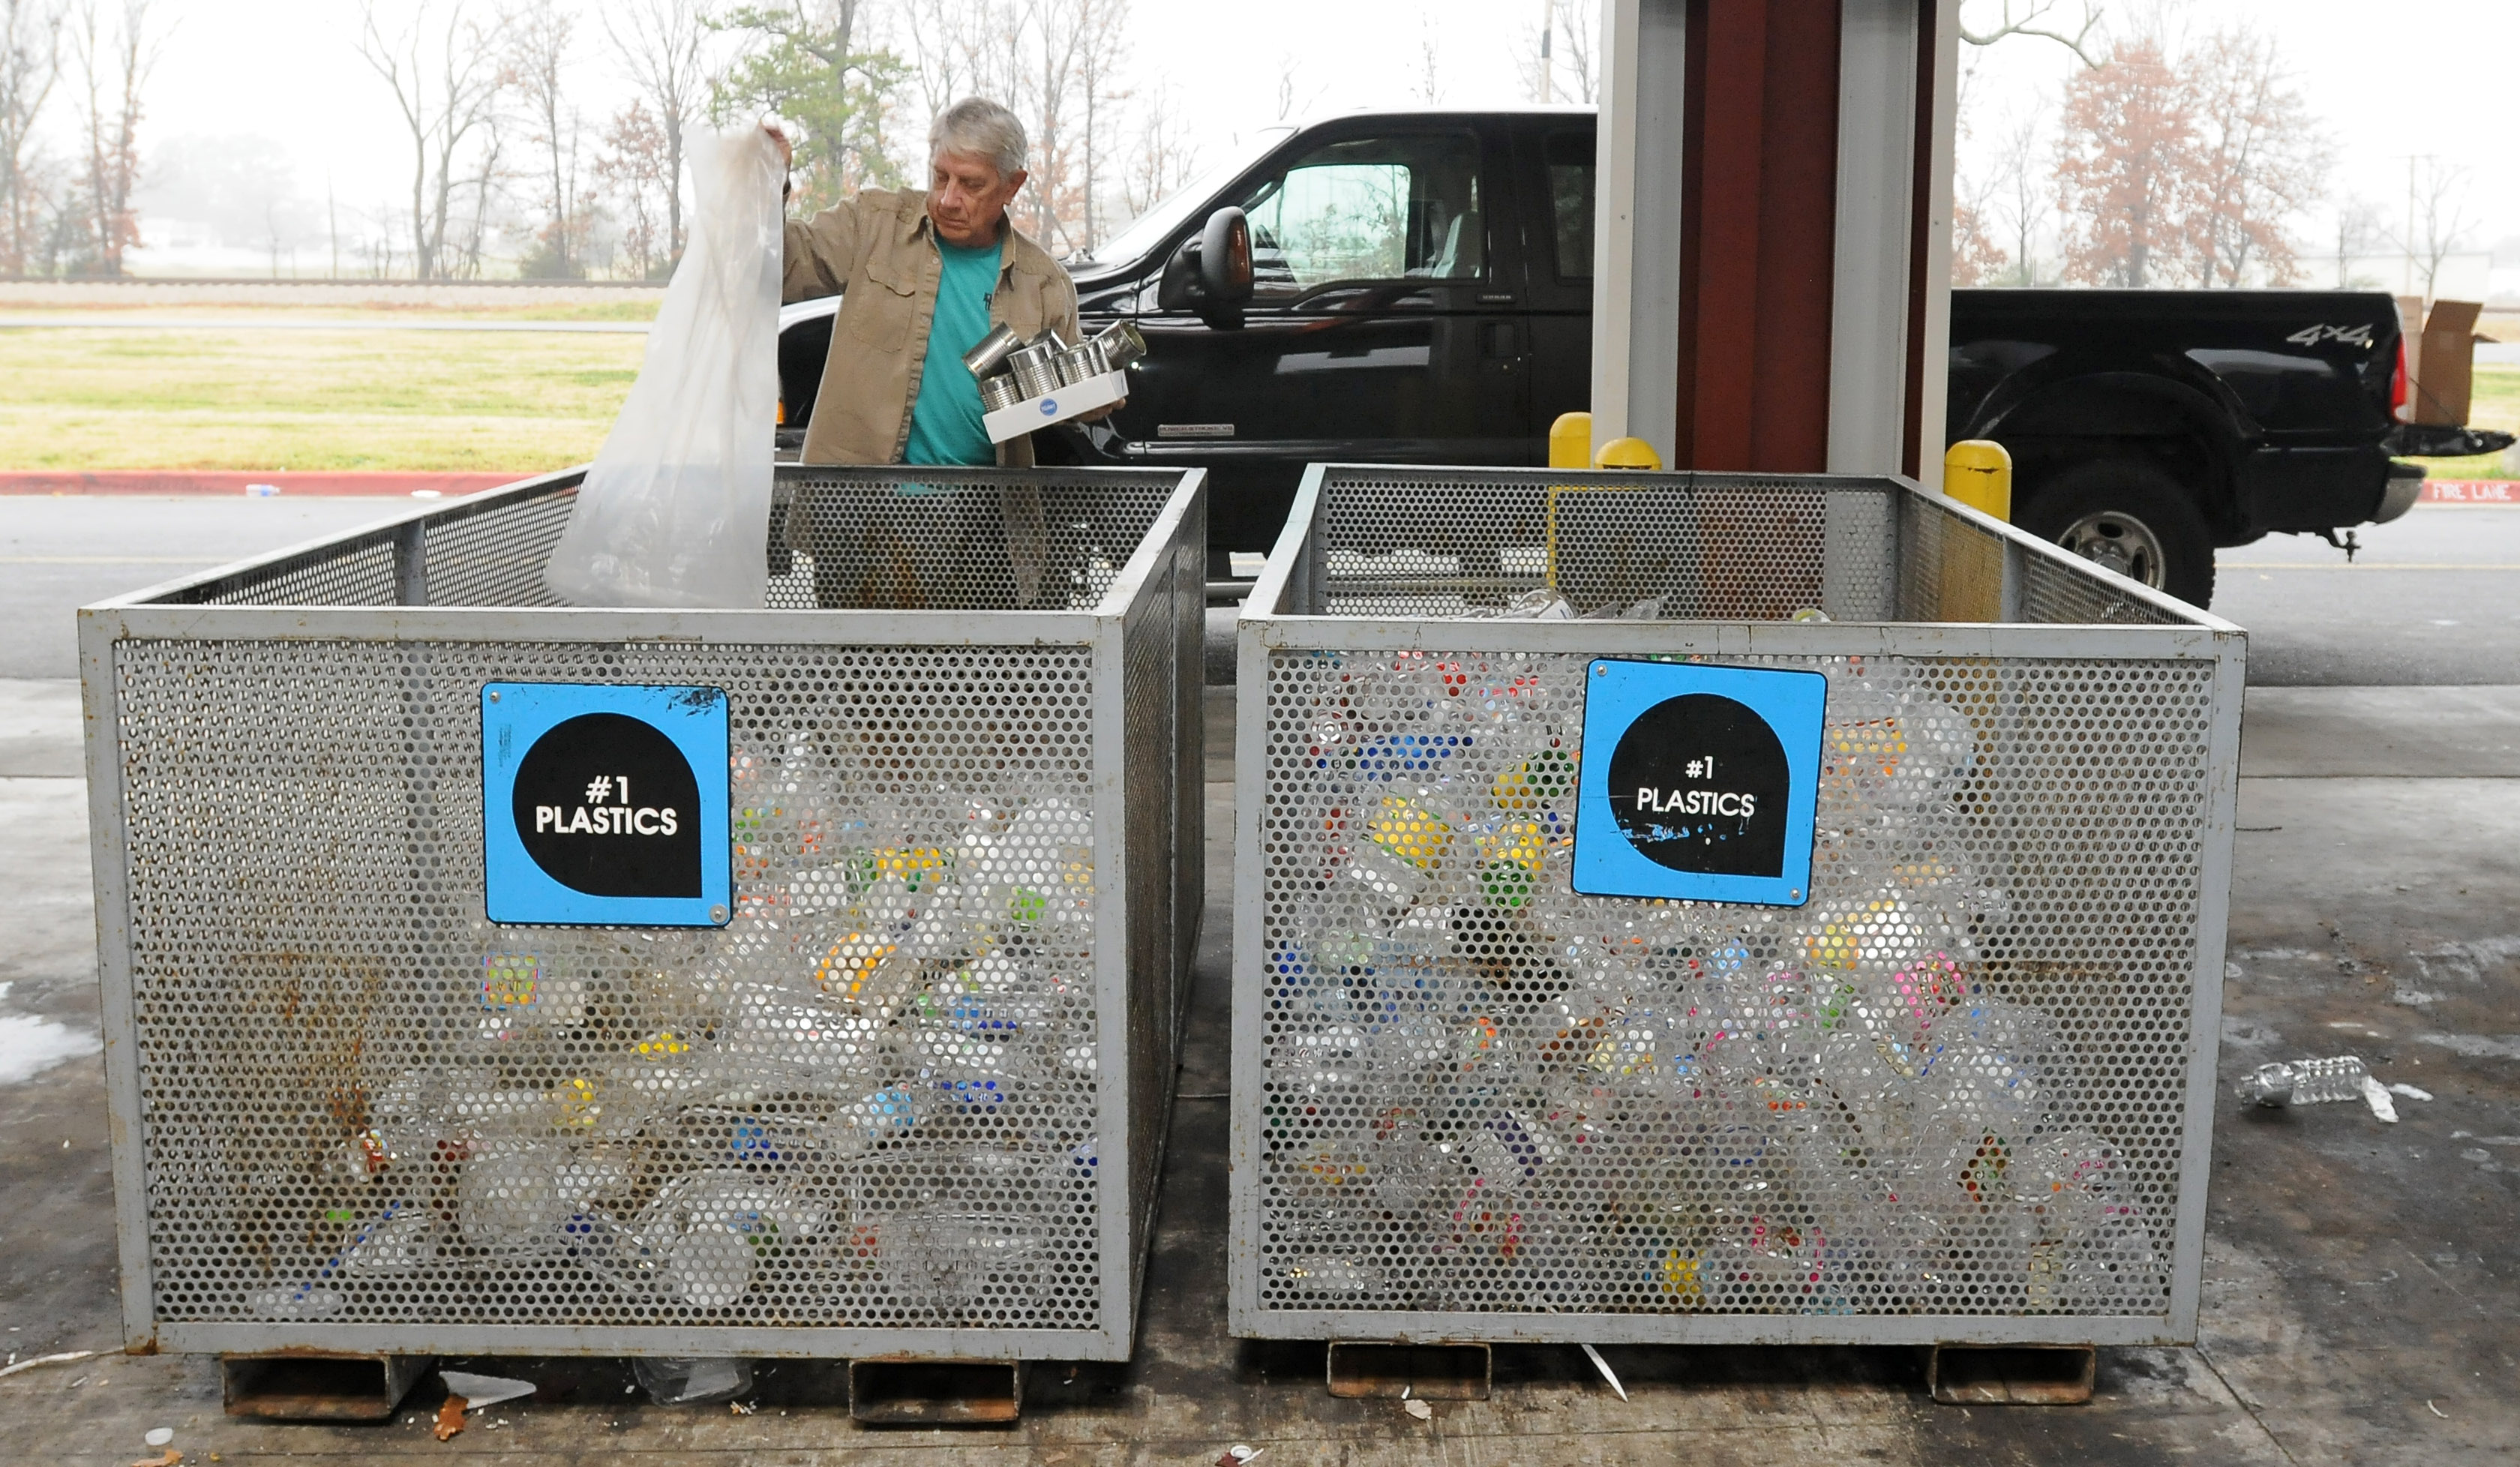 garbage recycling and heather rogers states essay Take a trip into an upgraded, more organized inbox with yahoo mail login and start exploring all the free, organizational tools for your email check out new themes, send gifs, find every photo you've ever sent or received.